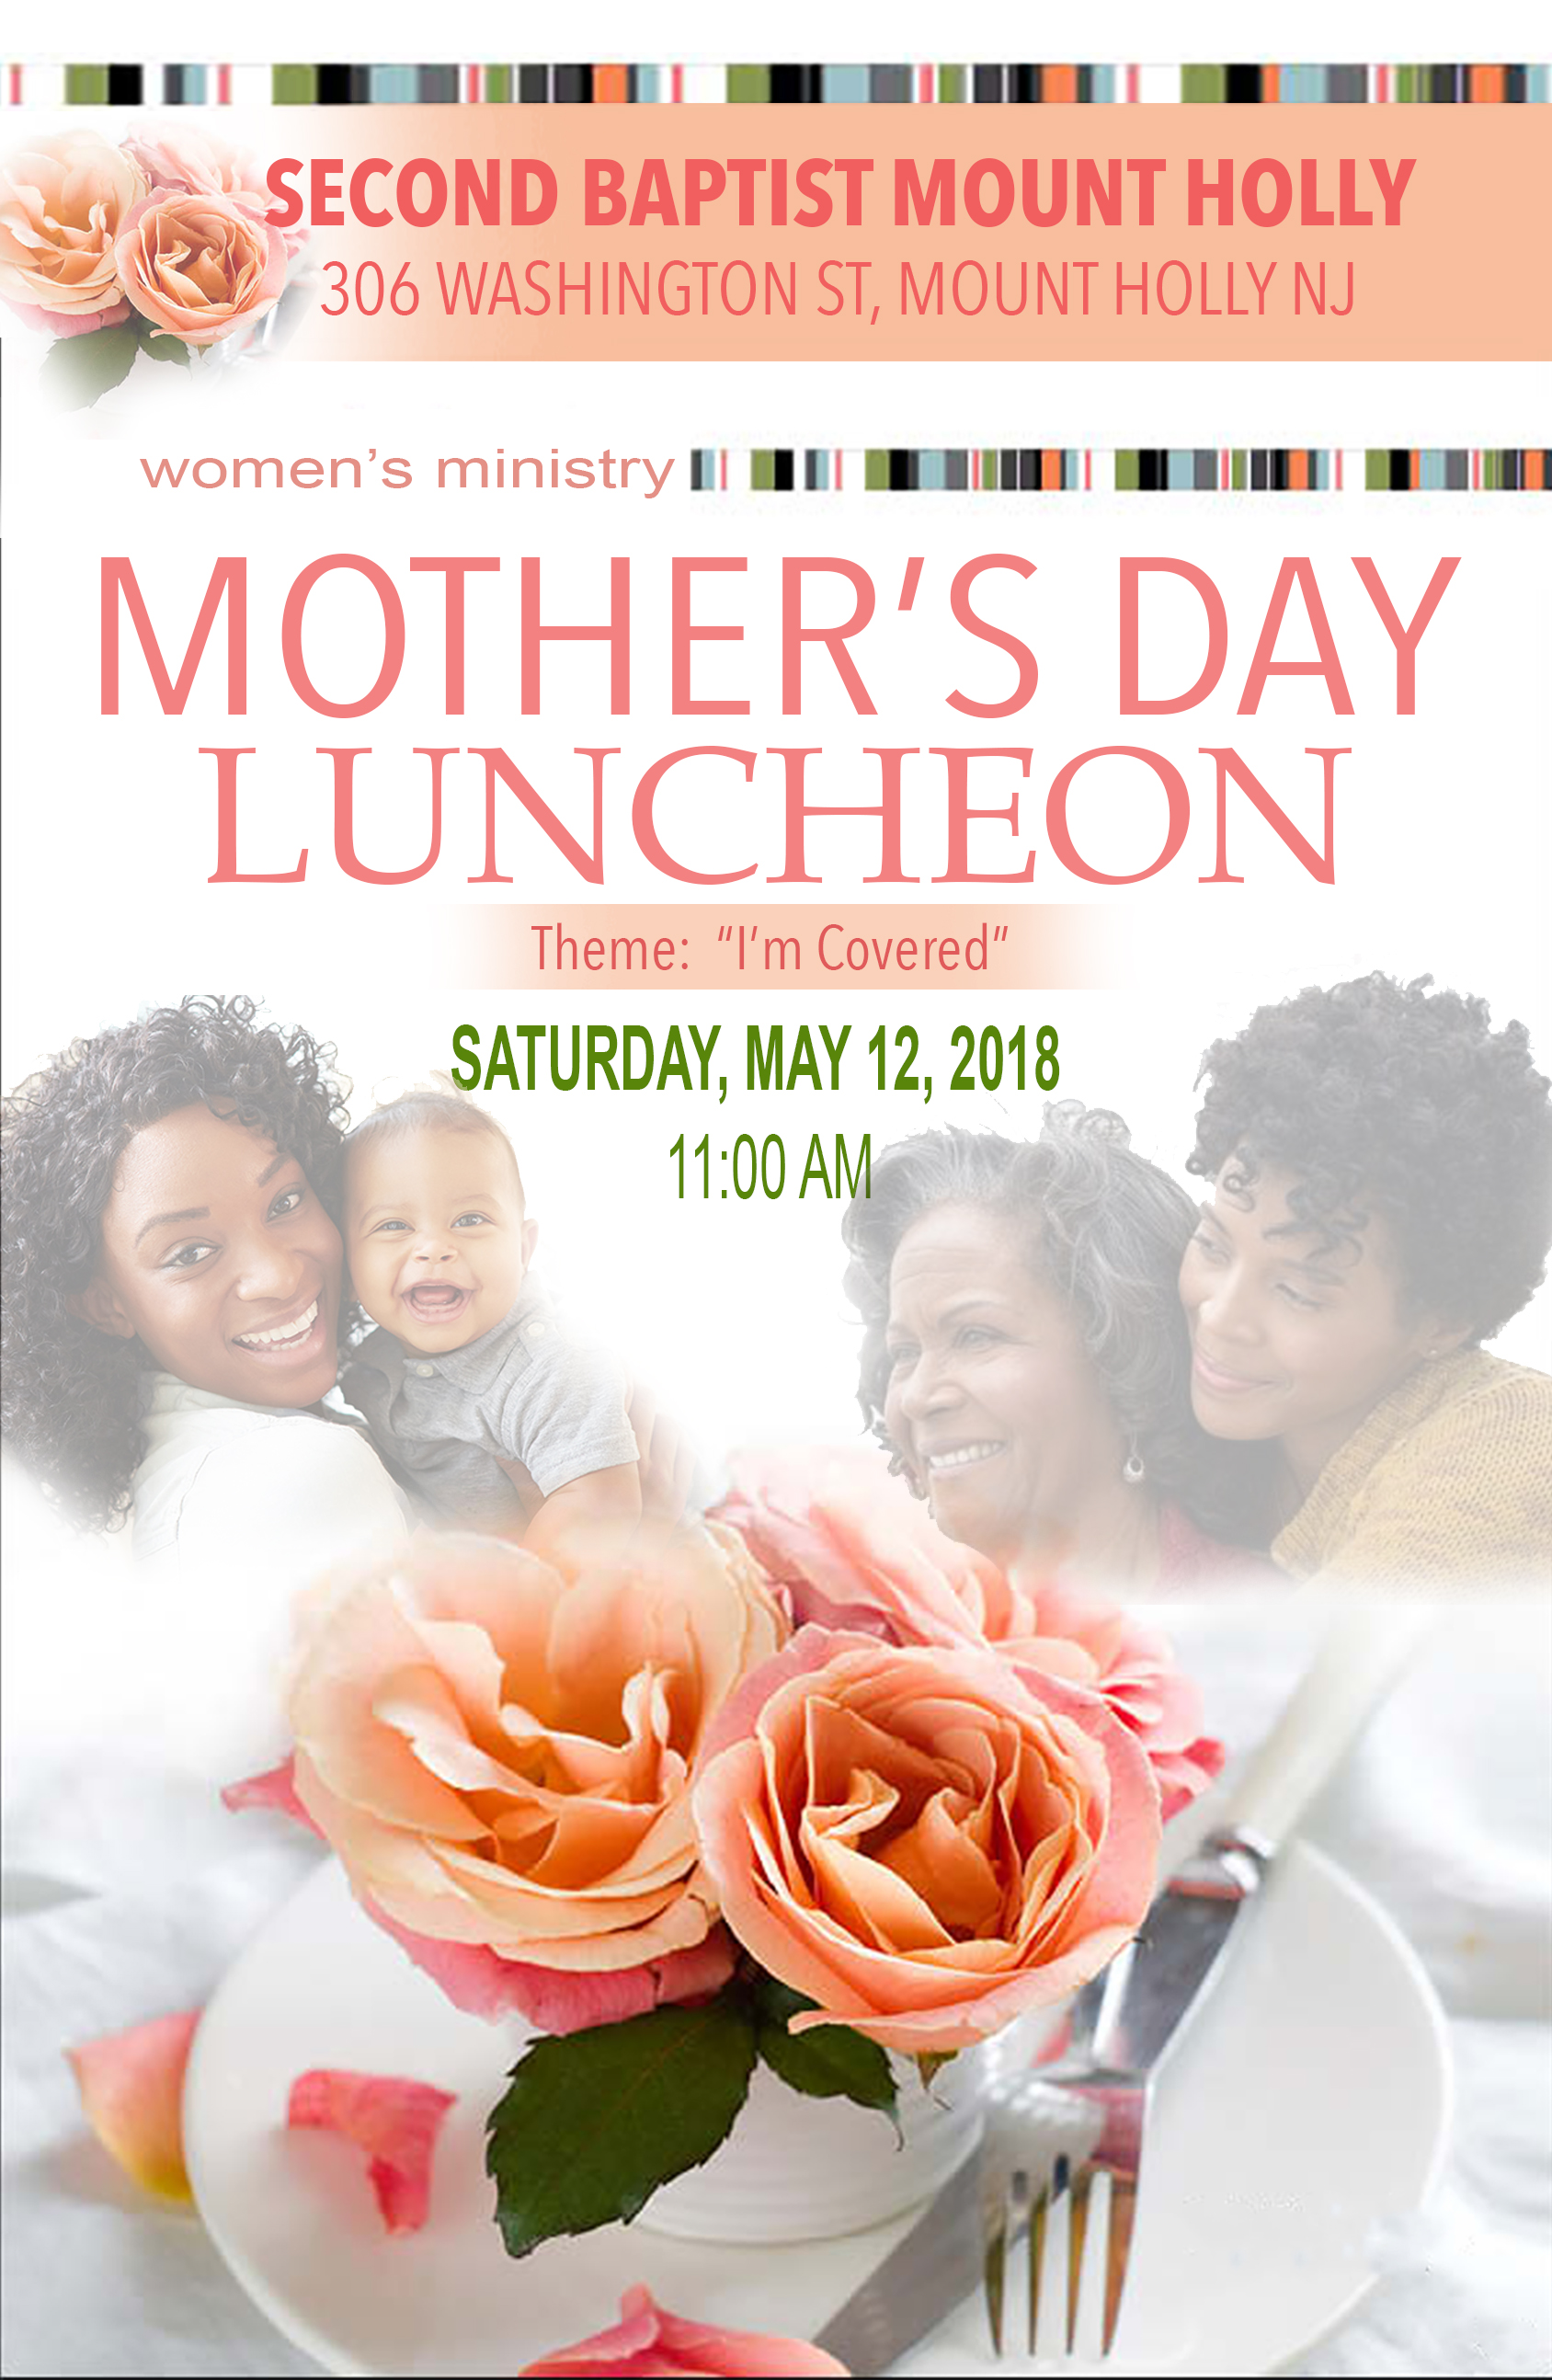 MOTHER'S DAY LUNCHEON PROGRAM COVER